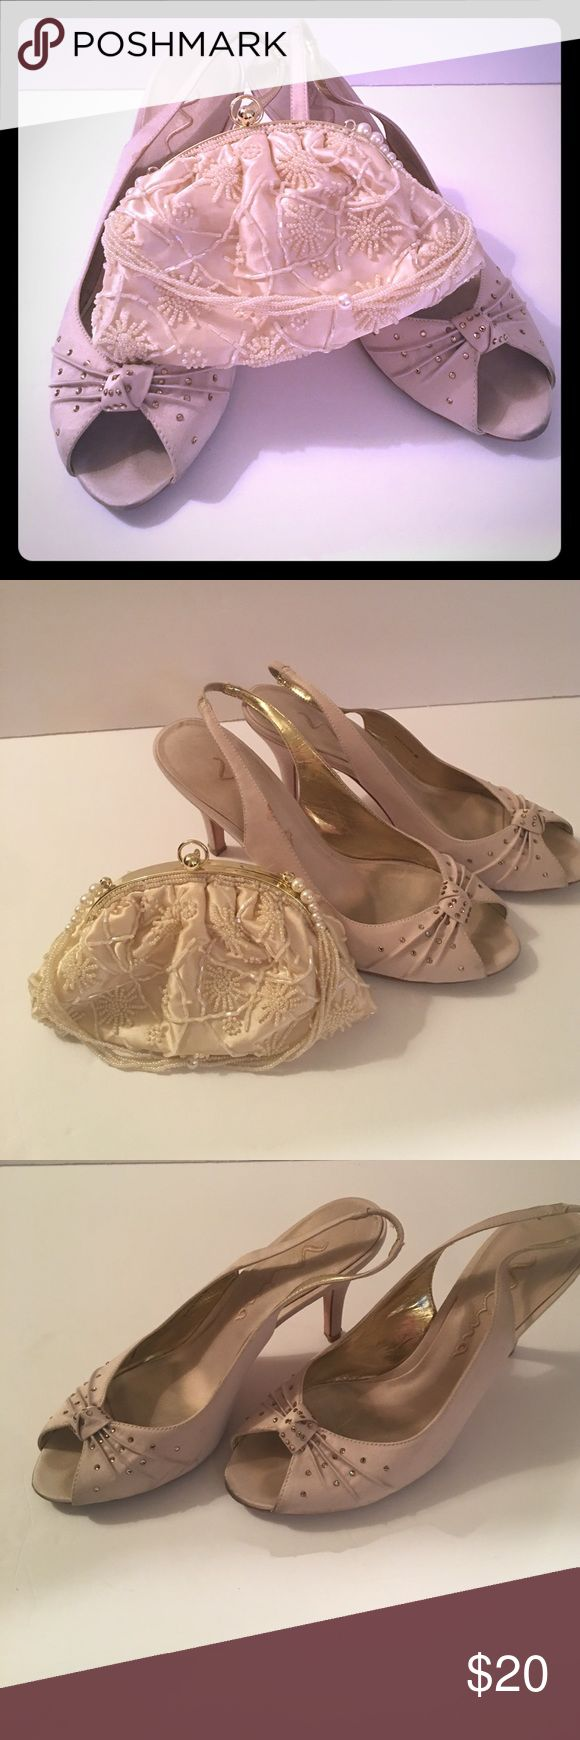 CHAMPAGNE COLORED NINA FLO POWDER HEELED SANDAL! Loved Nina champagne colored heeled sandal with Amber crystal accents!!! As well as a sensual cream toned HANDBAG perfect for any high fashion event! GREAT PRICE!!! Nina Shoes Heels